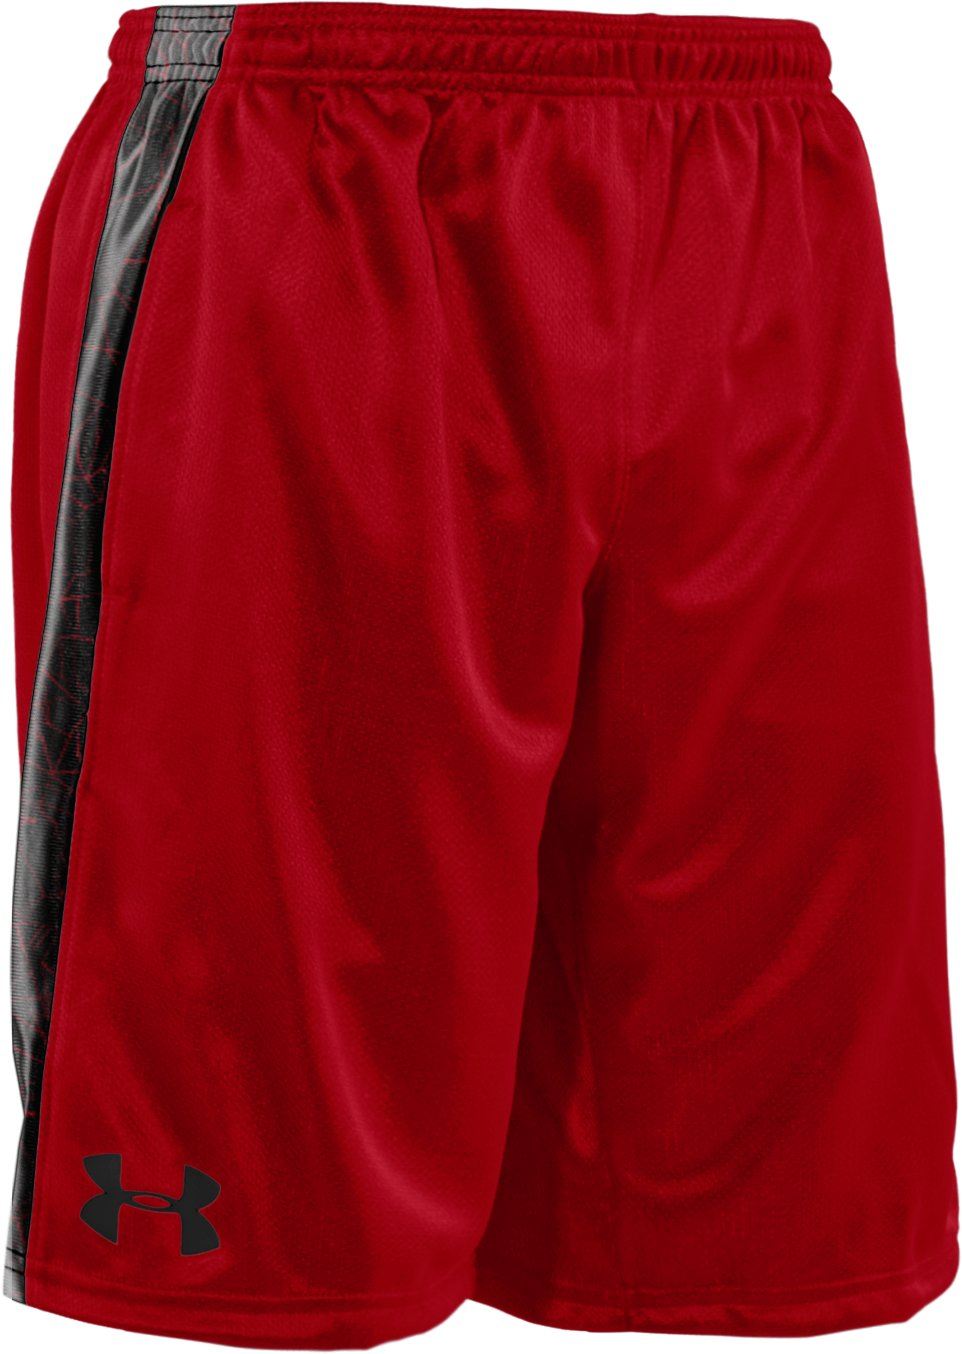 "Boys' UA Ultimate Printed 9"" Shorts, Red,"